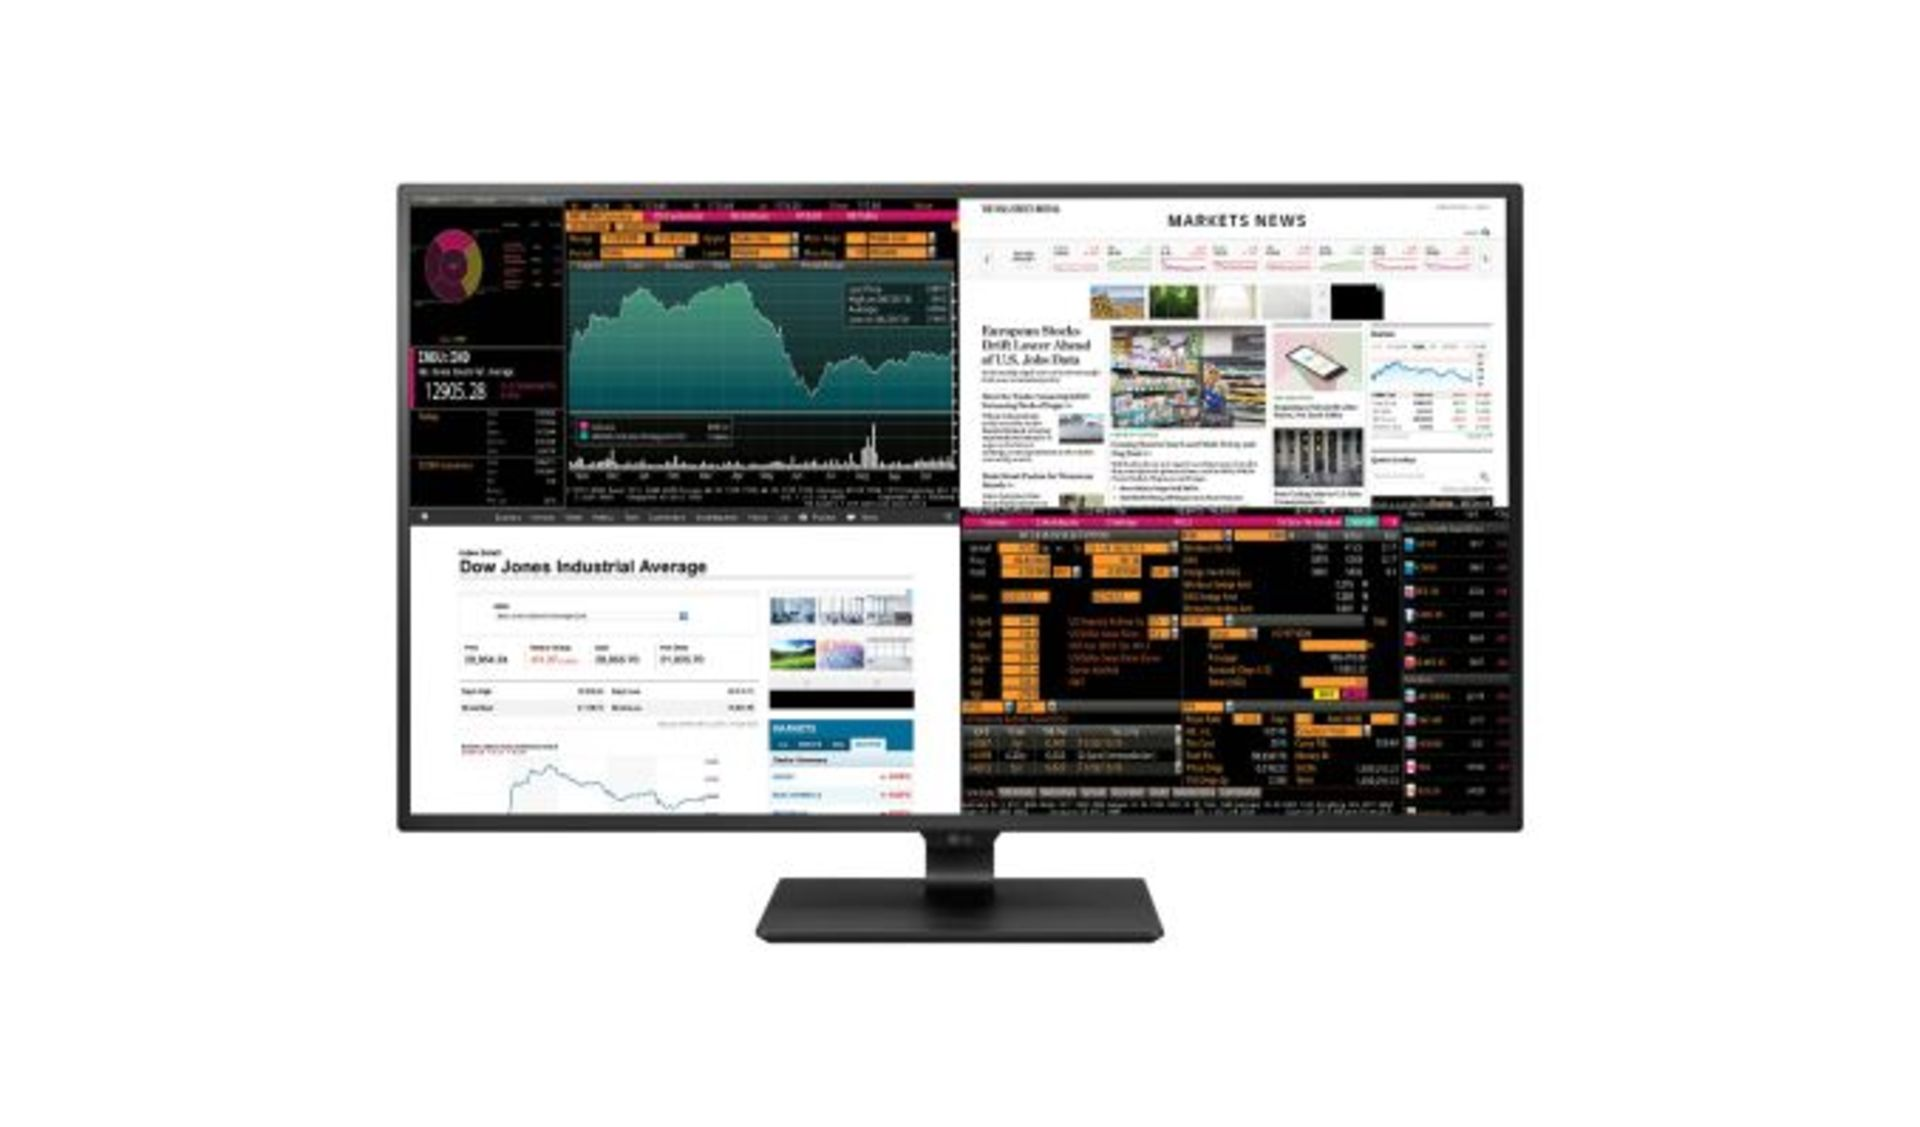 Lot 29918 - V Grade A LG 43 Inch 4K ULTRA HD IPS LED MONITOR - HDMI, DISPLAY PORT, USB TYPE C - SPEAKERS